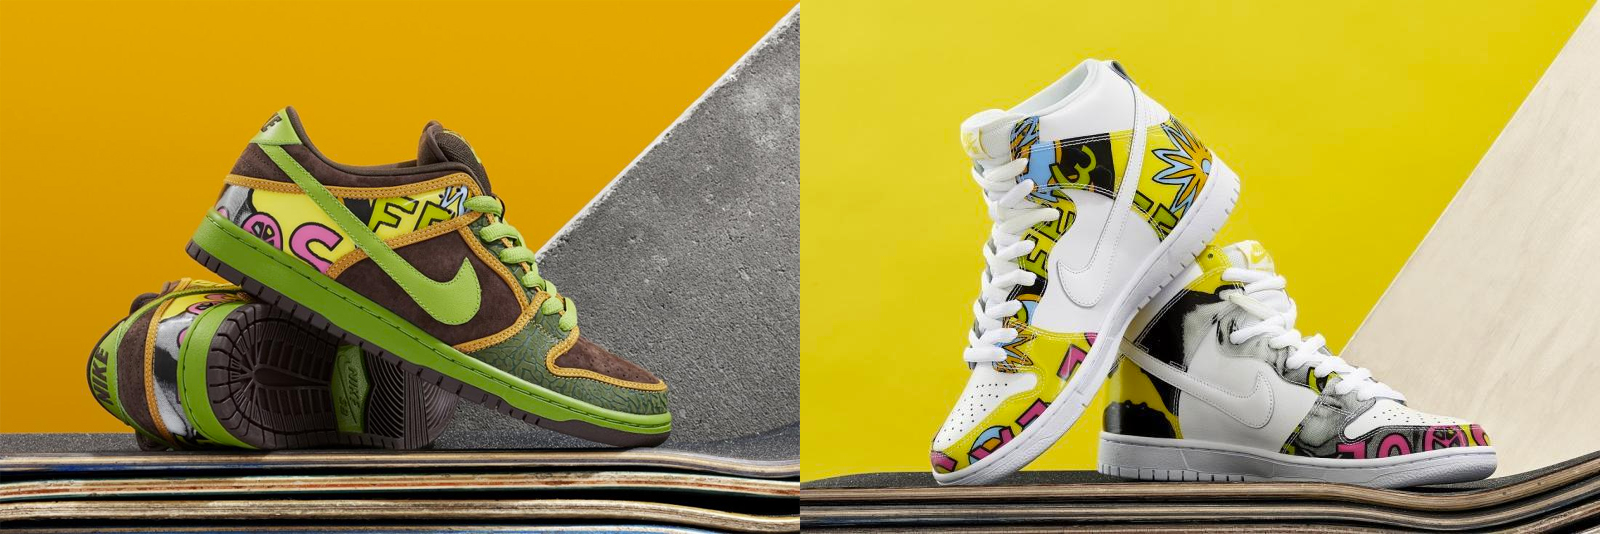 new concept c2ce8 da513 The Best Nike SB Dunk Releases This Year - The Hundreds